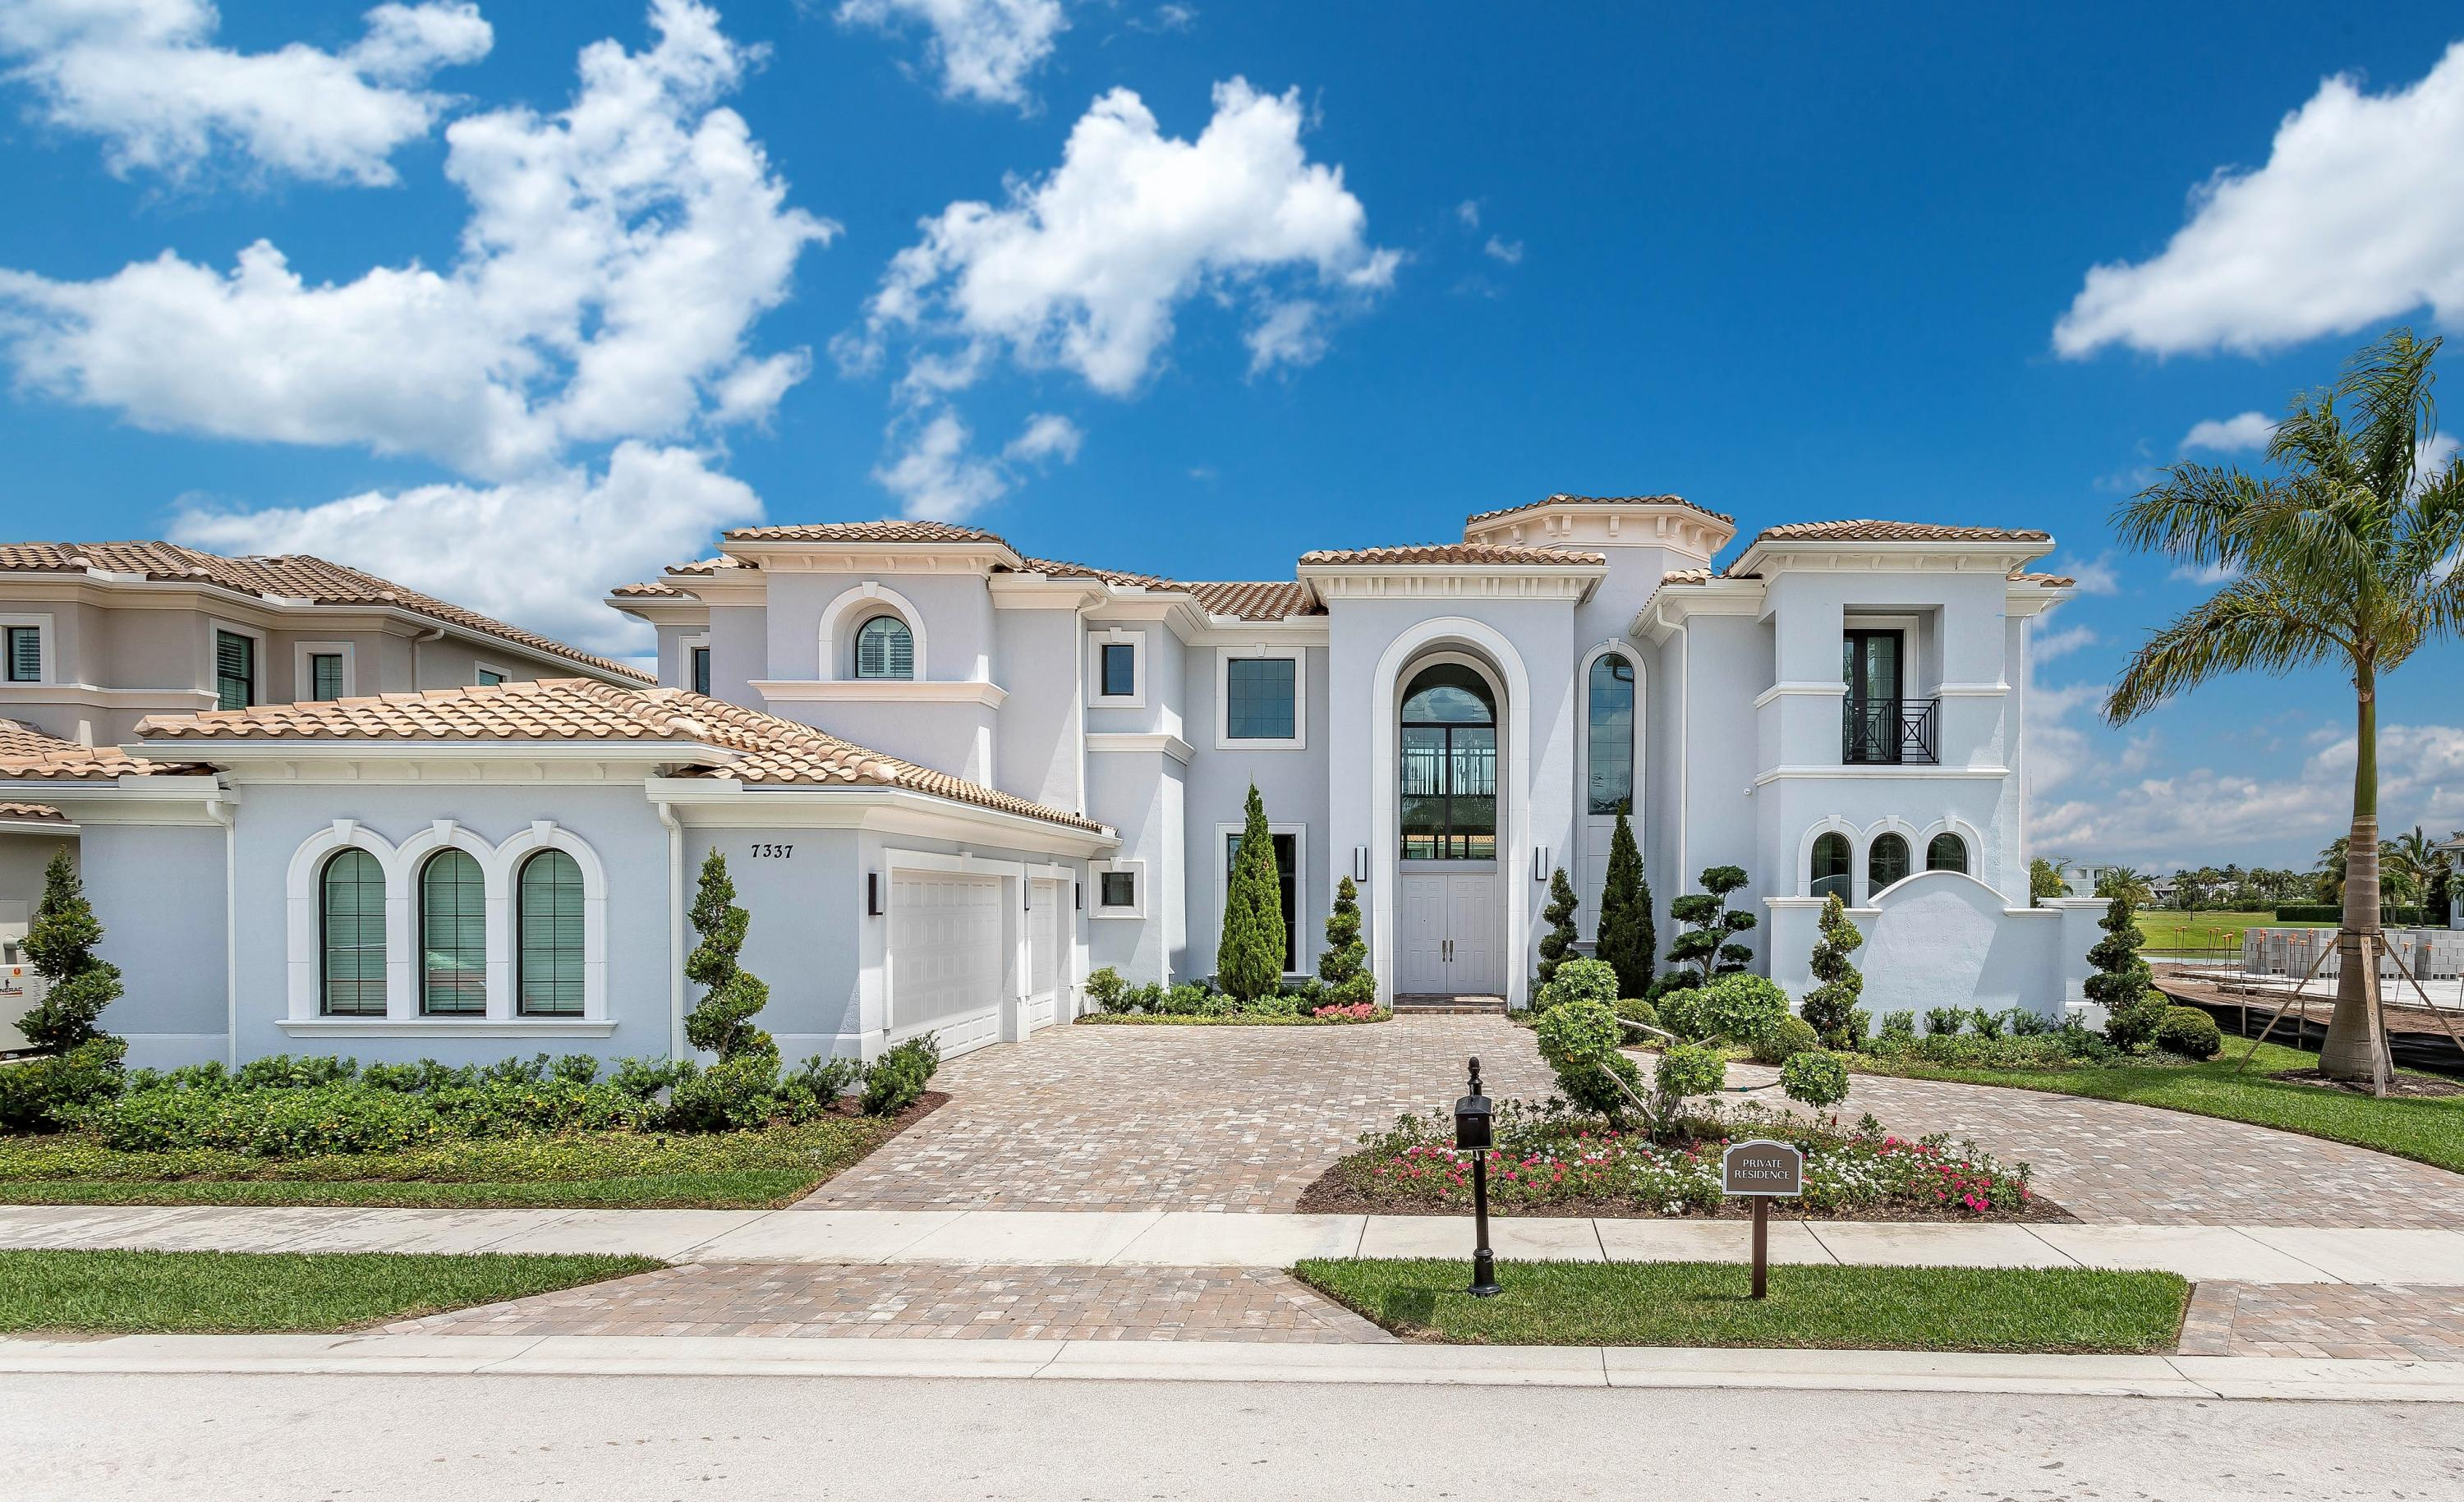 """Exquisite VILLA LAGO MASTERPIECE in the Signature Collection- ROYAL PALM POLO! Move in Ready! $800,000 in upgrades! Built New in 2017- Prime Location with Dramatic Center Lake Views, In the Heart of Boca, Home has beautiful landscaping leading to a covered entry that opens to a two-story foyer, with 48 X 48 Porcelain Tile Flooring, Spectacular Formal Living room, Gorgeous Chandelier, Customer Gas Fireplace with LED lights & wet bar with large Impact Windows looking out the outdoor Oasis, Cover loggia with 24 X 48 Lime Stone & Custom invisible drain, Grass Pool deck, Two outdoor Fireplaces, Custom Pool & Spa, Brand New Summer Kitchen with a beautiful Lake view. The Expansive custom Gourmet Chefs Kitchen with a Large Center Island, Gas Wolf Stove with indoor grill & Sub Zero Appliances! Breakfast area adjacent to the expansive Family room with one of the most amazing Restoration Hardware Chandelier & Custom Gas fireplace with LED lights, two Luxurious Master Suites one on the first floor & one on the Second Floor, First Floor Master Suite has two very Large Walk-in Closets, Morning Bar, Master Bath Has His And Hers water  closets, Large shower & Soak Tub,Upstairs Master has large Setting Area, Morning Bar, Large En-suite Roman Tub, Gorgeous Juliette Balcony over looking the outdoor Oasis, all bedrooms have private en-suites. Home has Private Study/Bonus room/Theater. Impressive State of art Smart Home System """"Control 4"""" running the outdoor lights, Surround Sound inside & Out, Temper Control. Royal Palm Polo has an amazing Clubhouse, Gym, Resort Pool, Tennis Courts."""